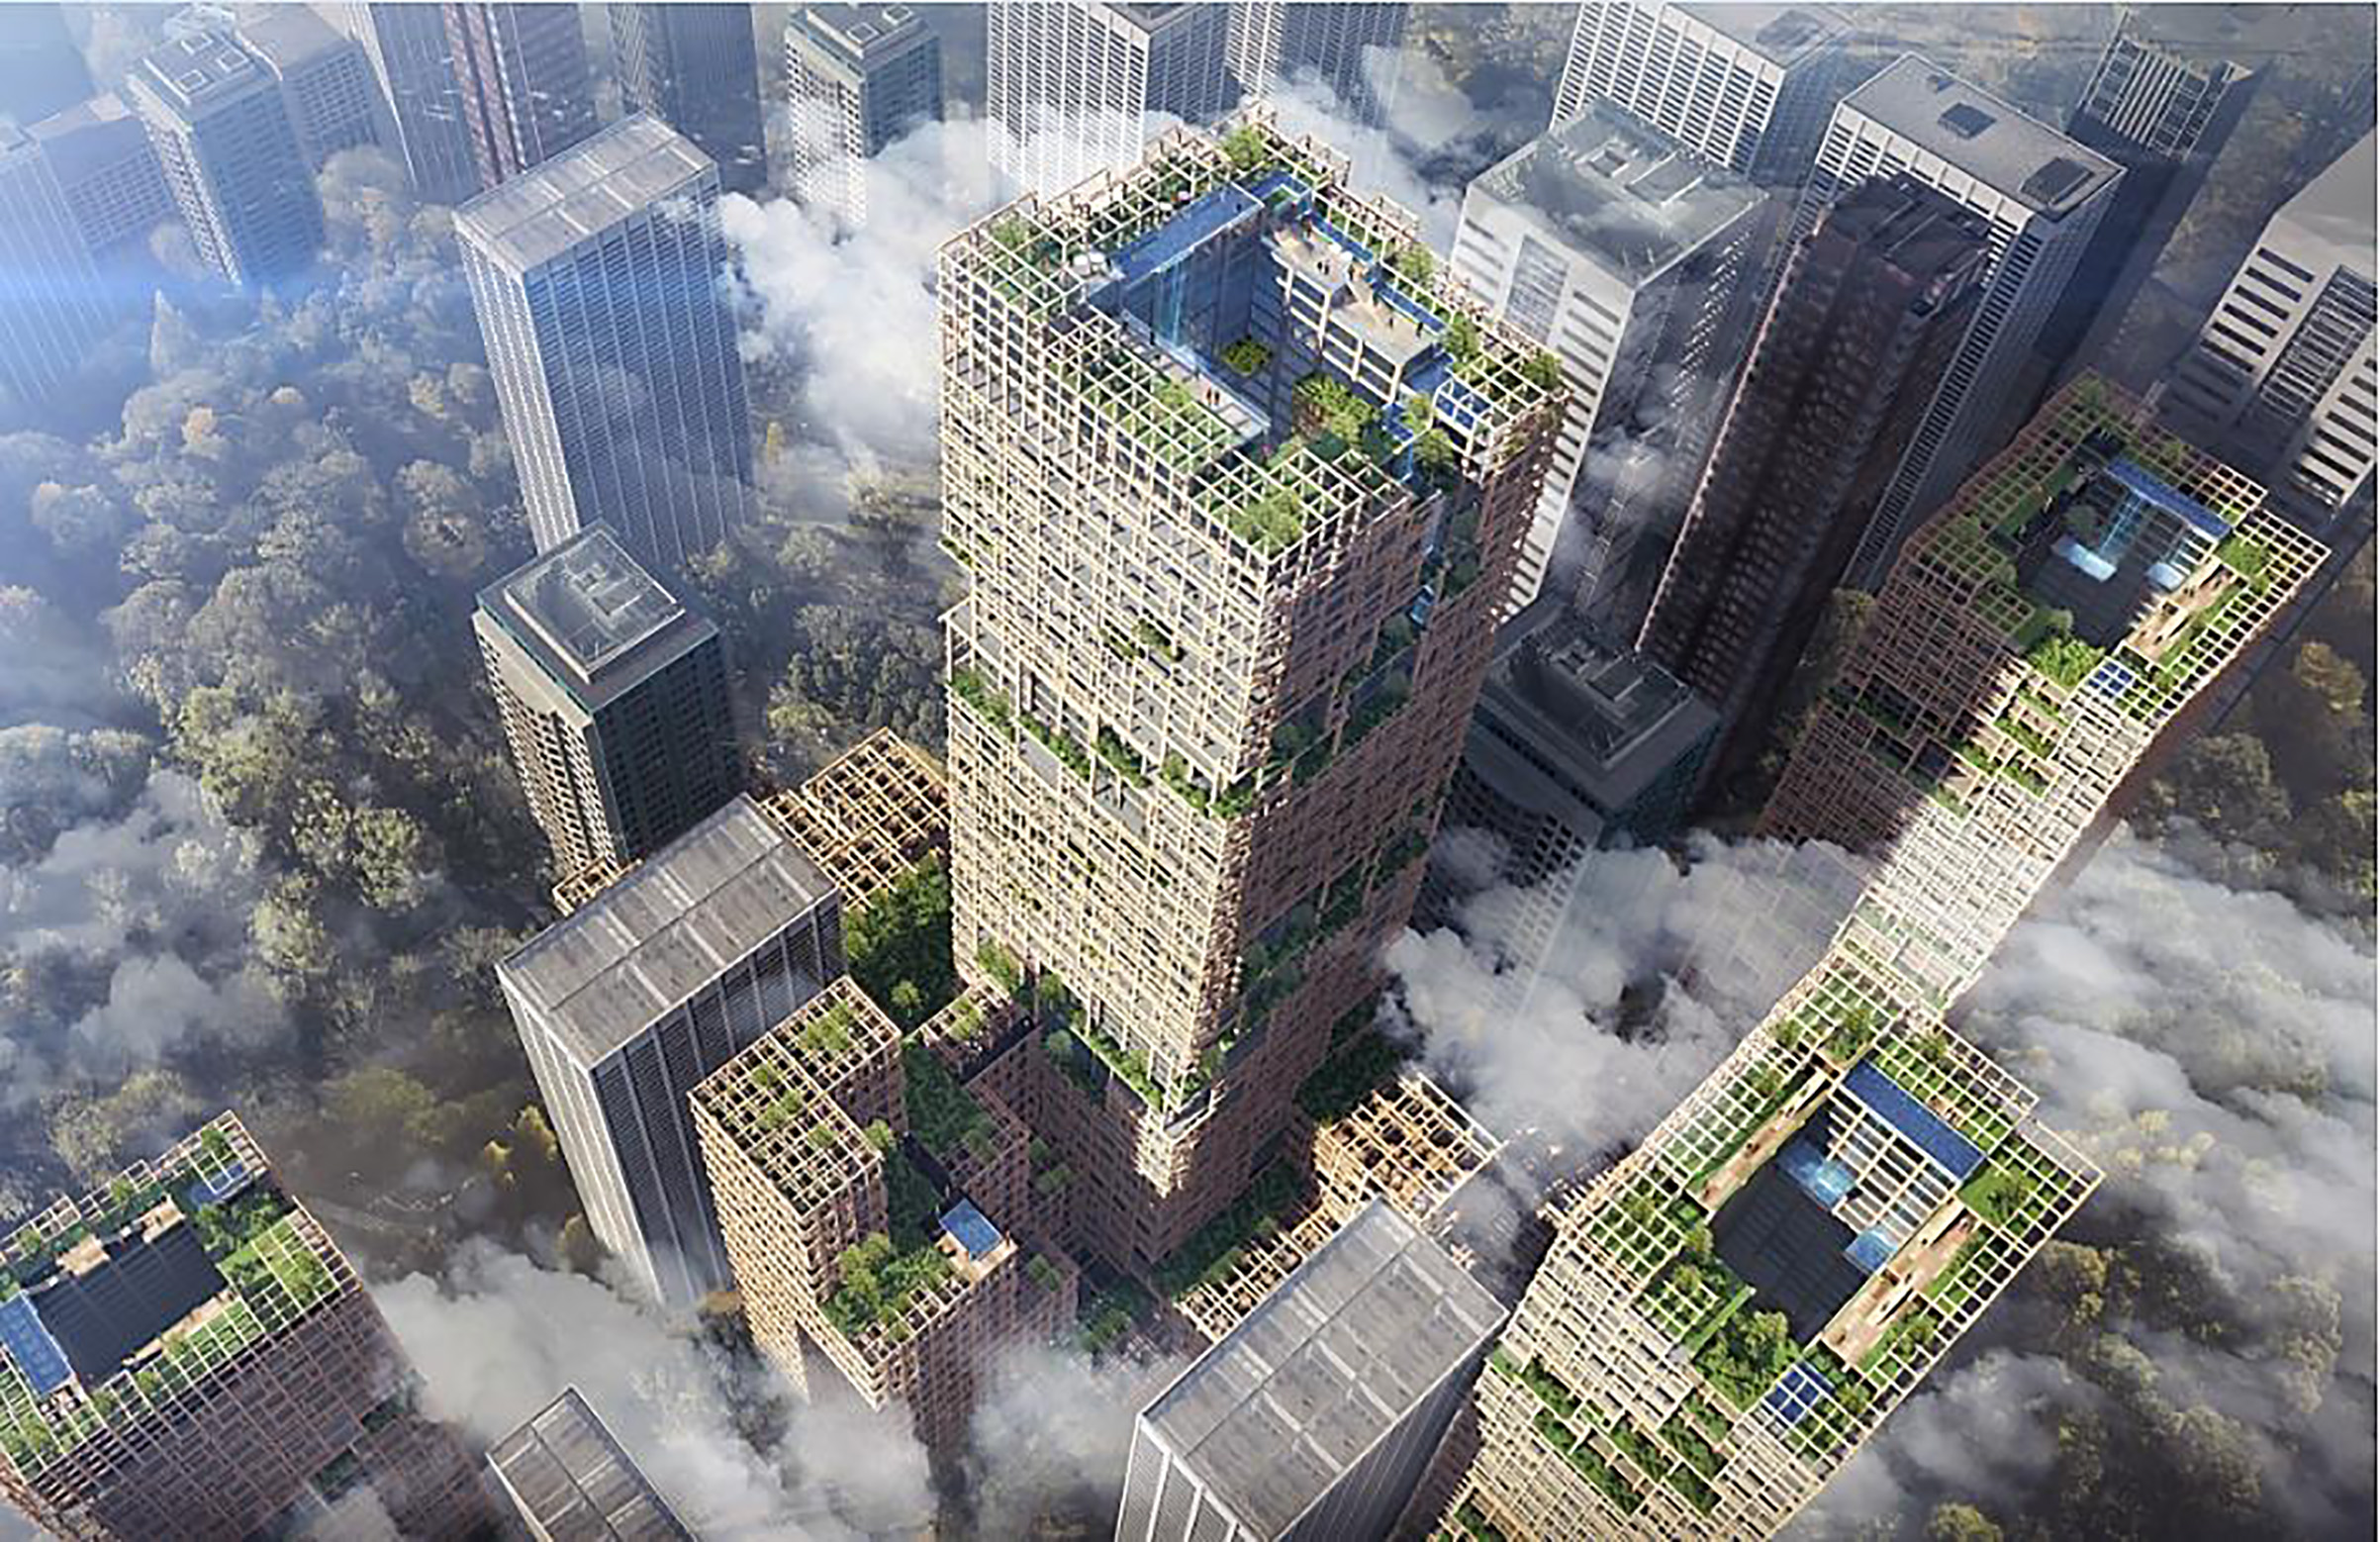 Previously neglected materials such as wood have become major elements of trendy newly-built landmarks, adding new nature-oriented features to skylines all over the globe. Photo: Sumitomo Forestry's proposal for the world's largest timber skyscraper.